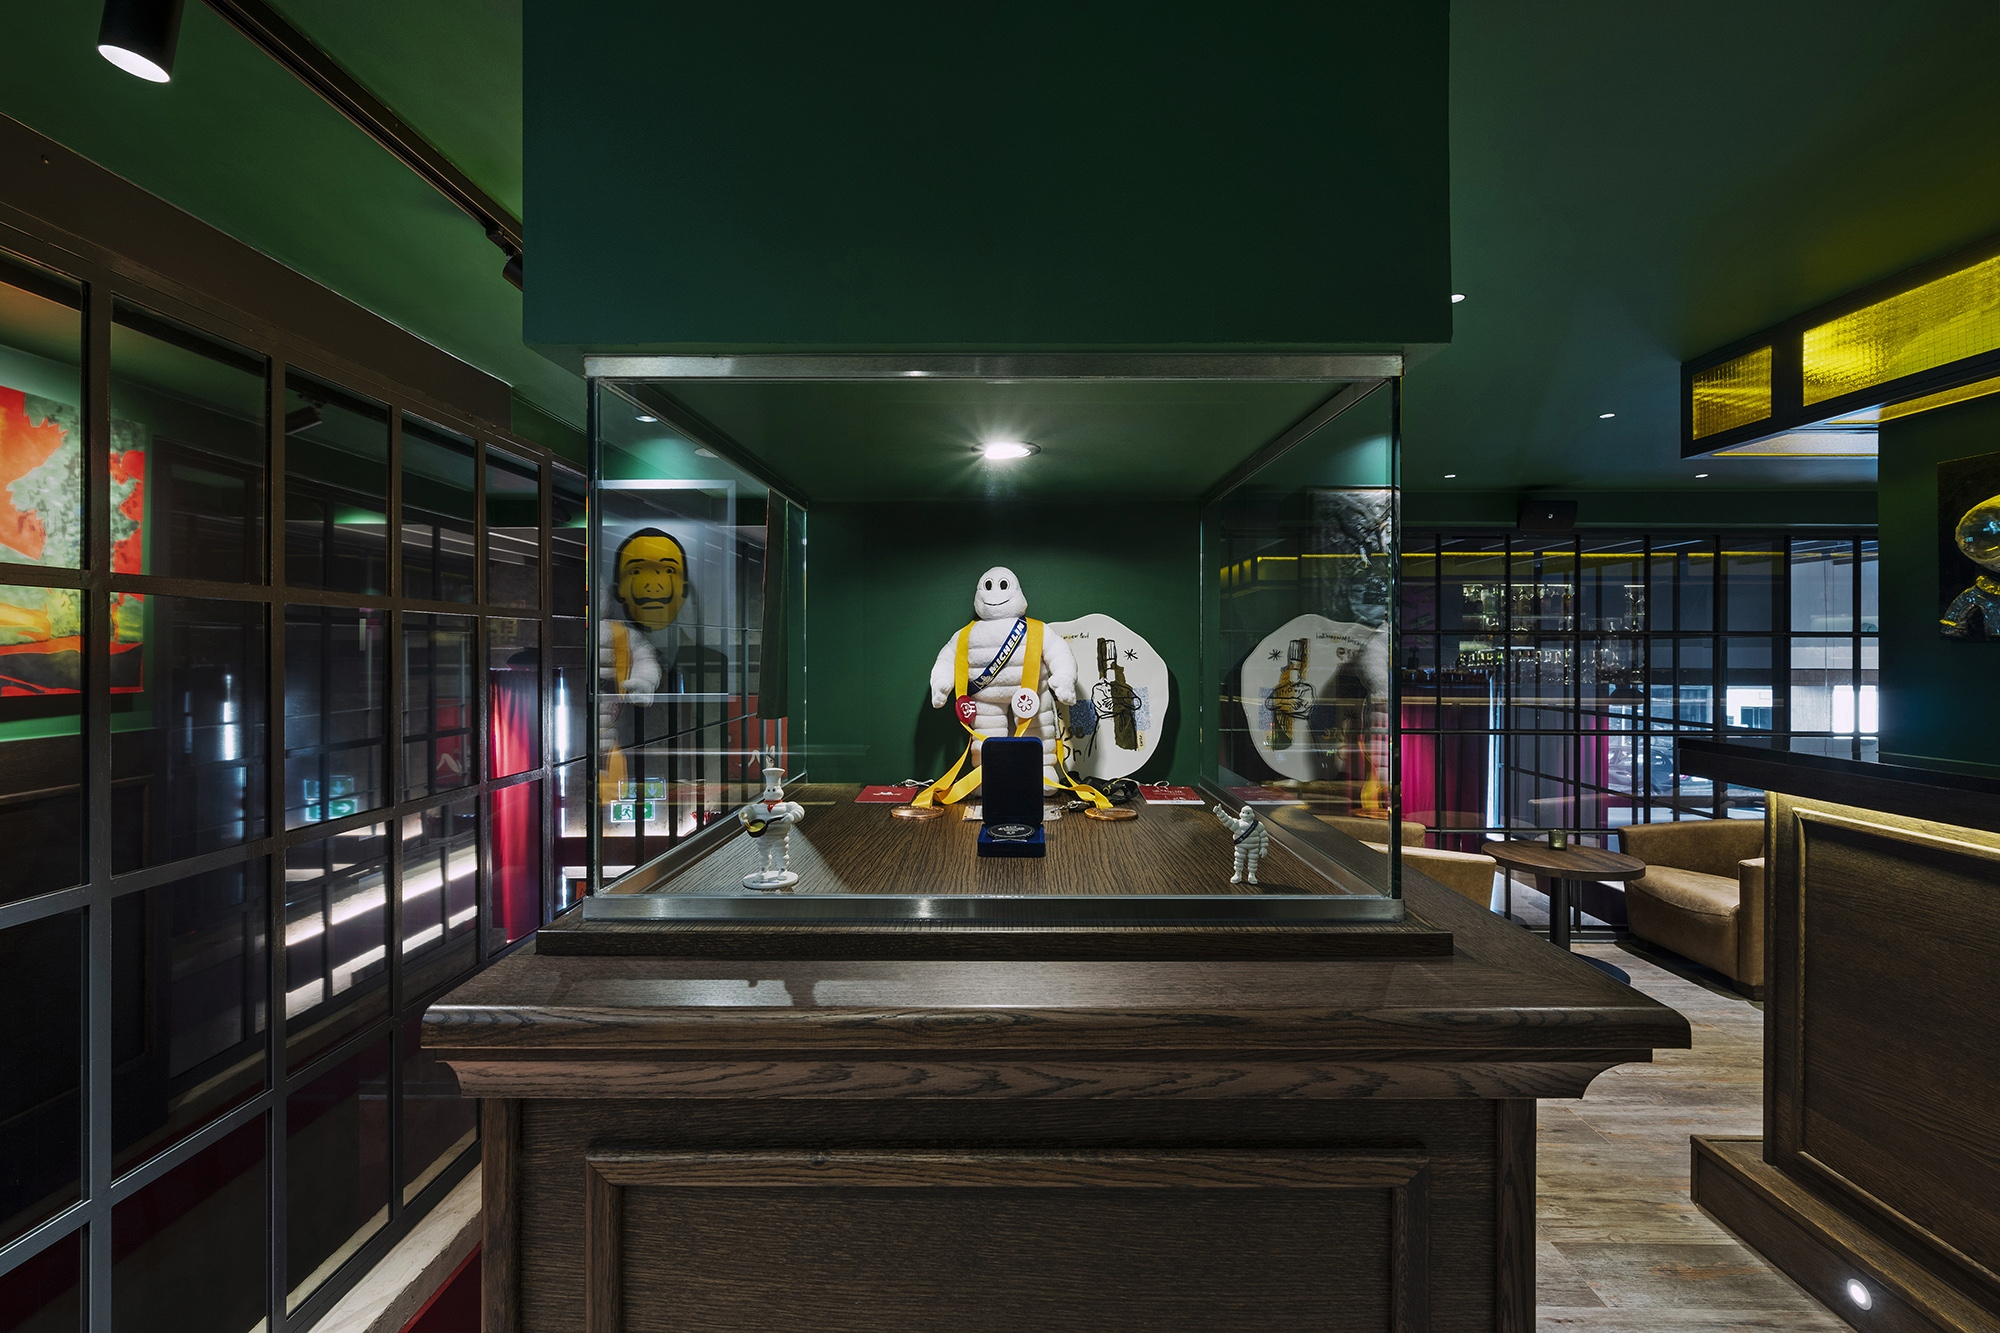 Guests can enjoy a welcome drink at the bar on gallery level